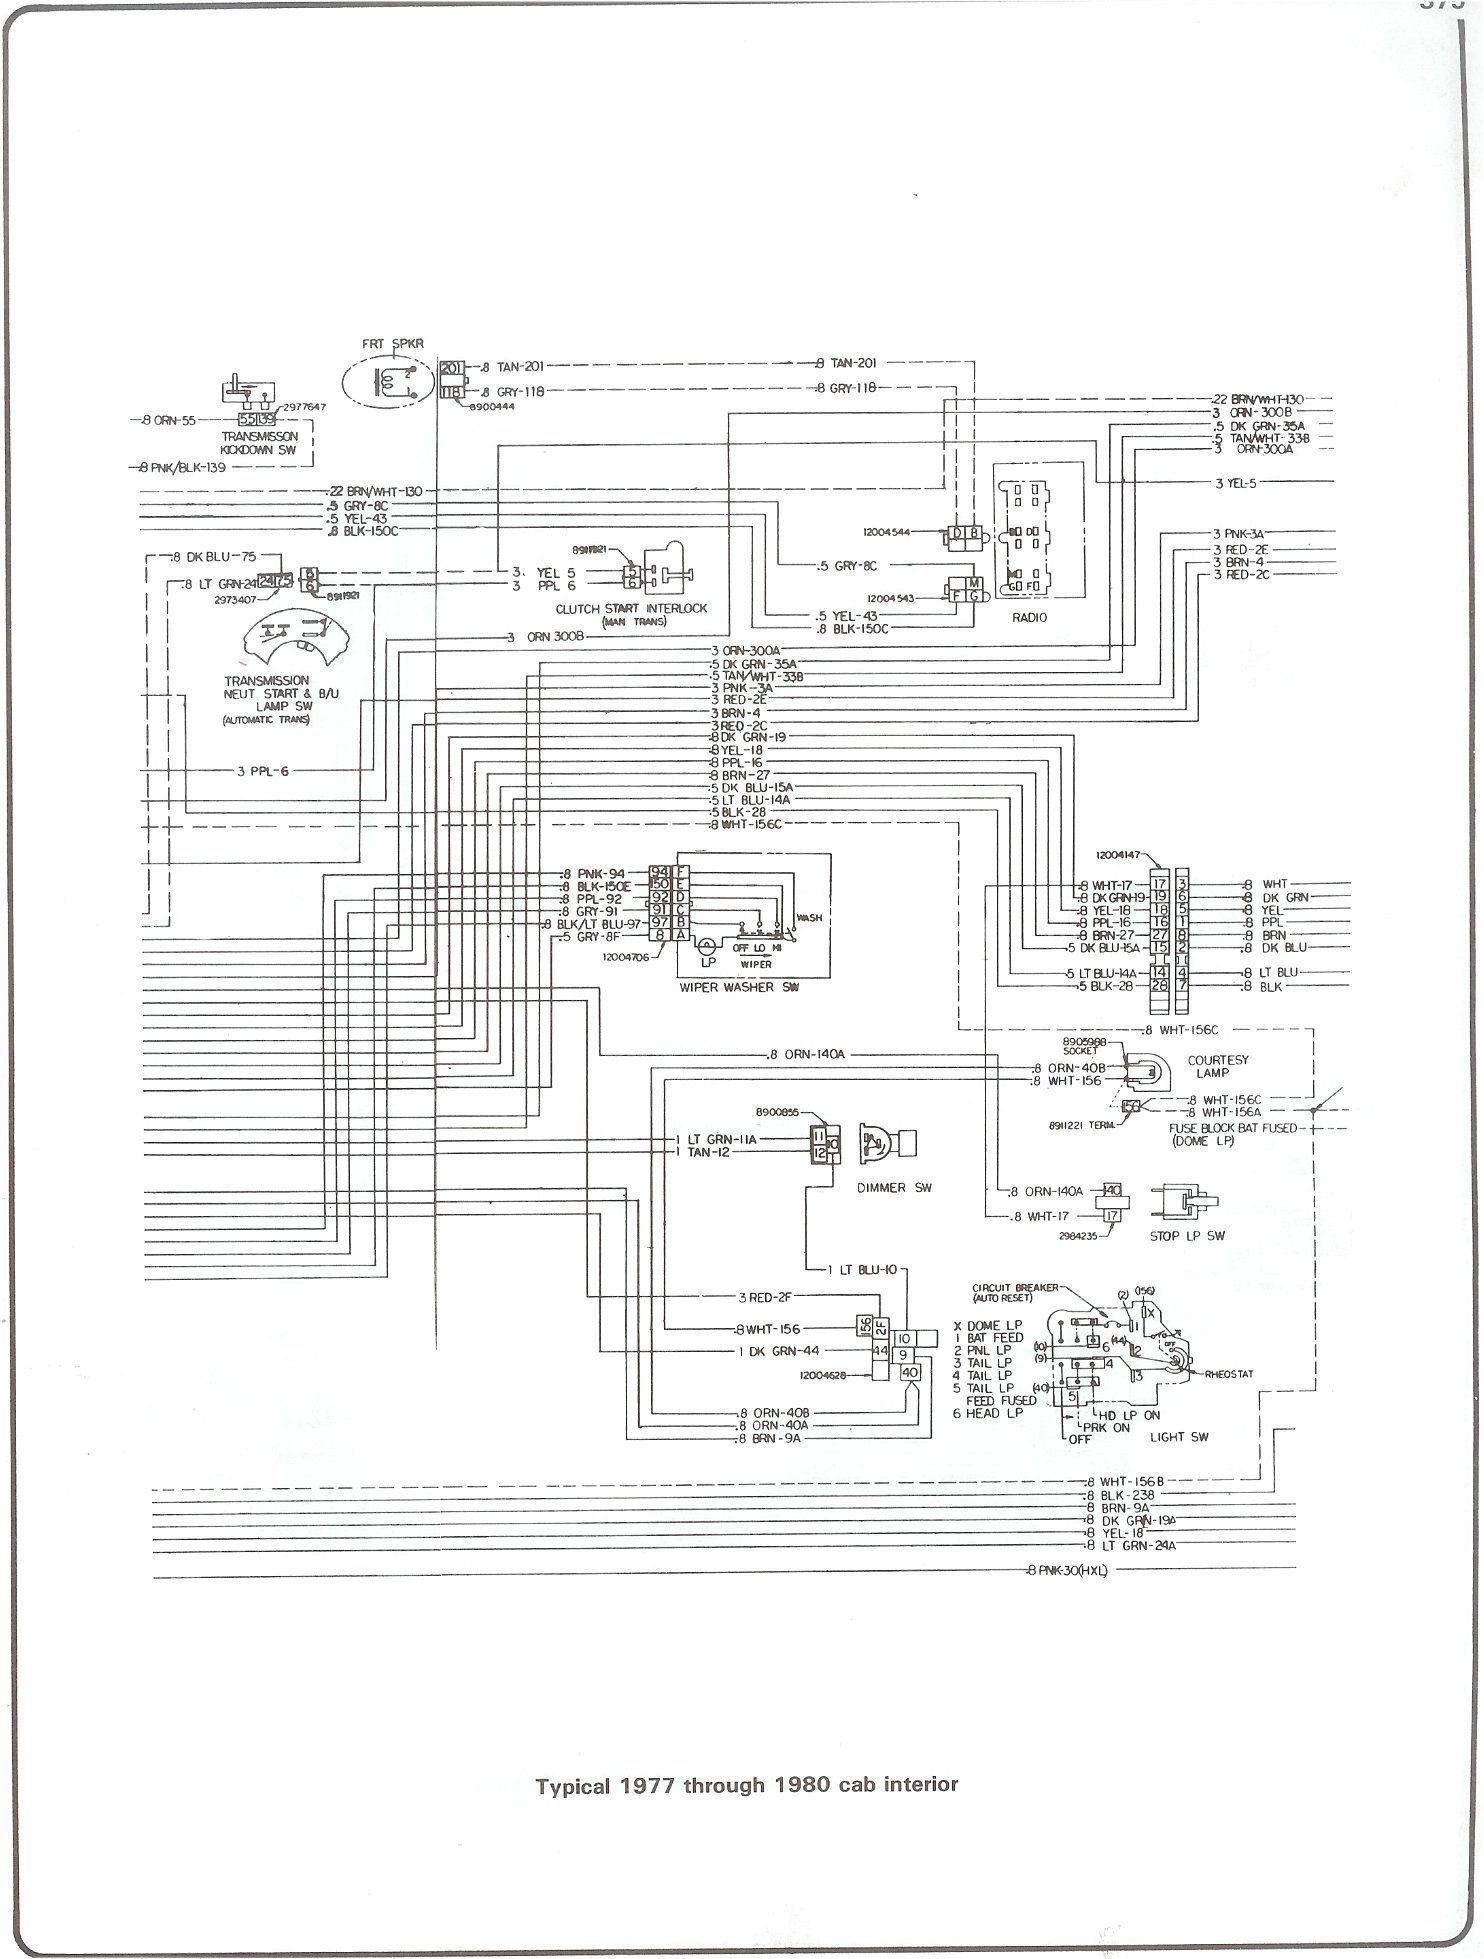 1990 Silverado Wiring Diagram Simple Guide About 1988 Chevy Caprice Complete 73 87 Diagrams S10